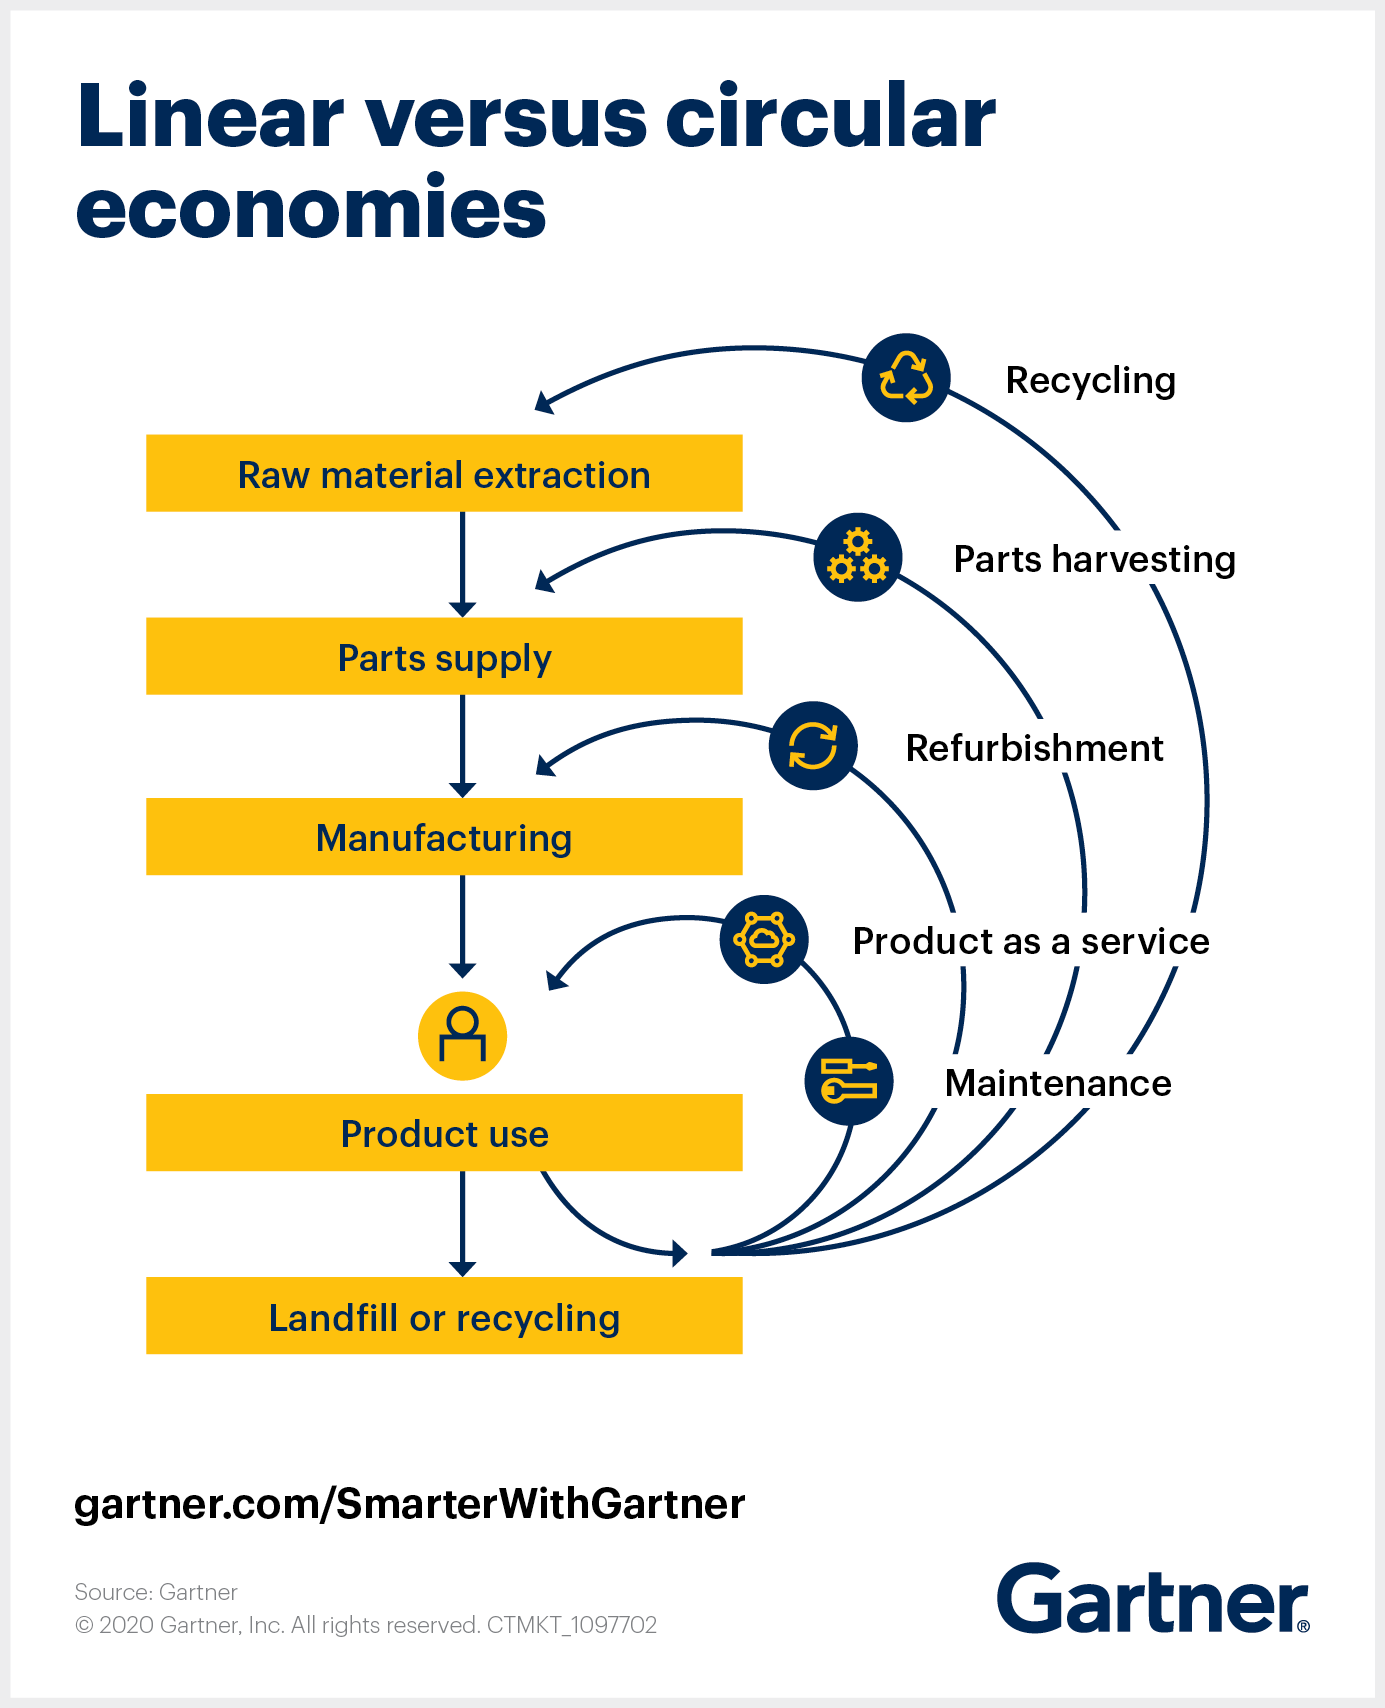 Gartner shows how a circular economy moves away from the traditional consumption-based linear economy to achieve raw materials resilience.